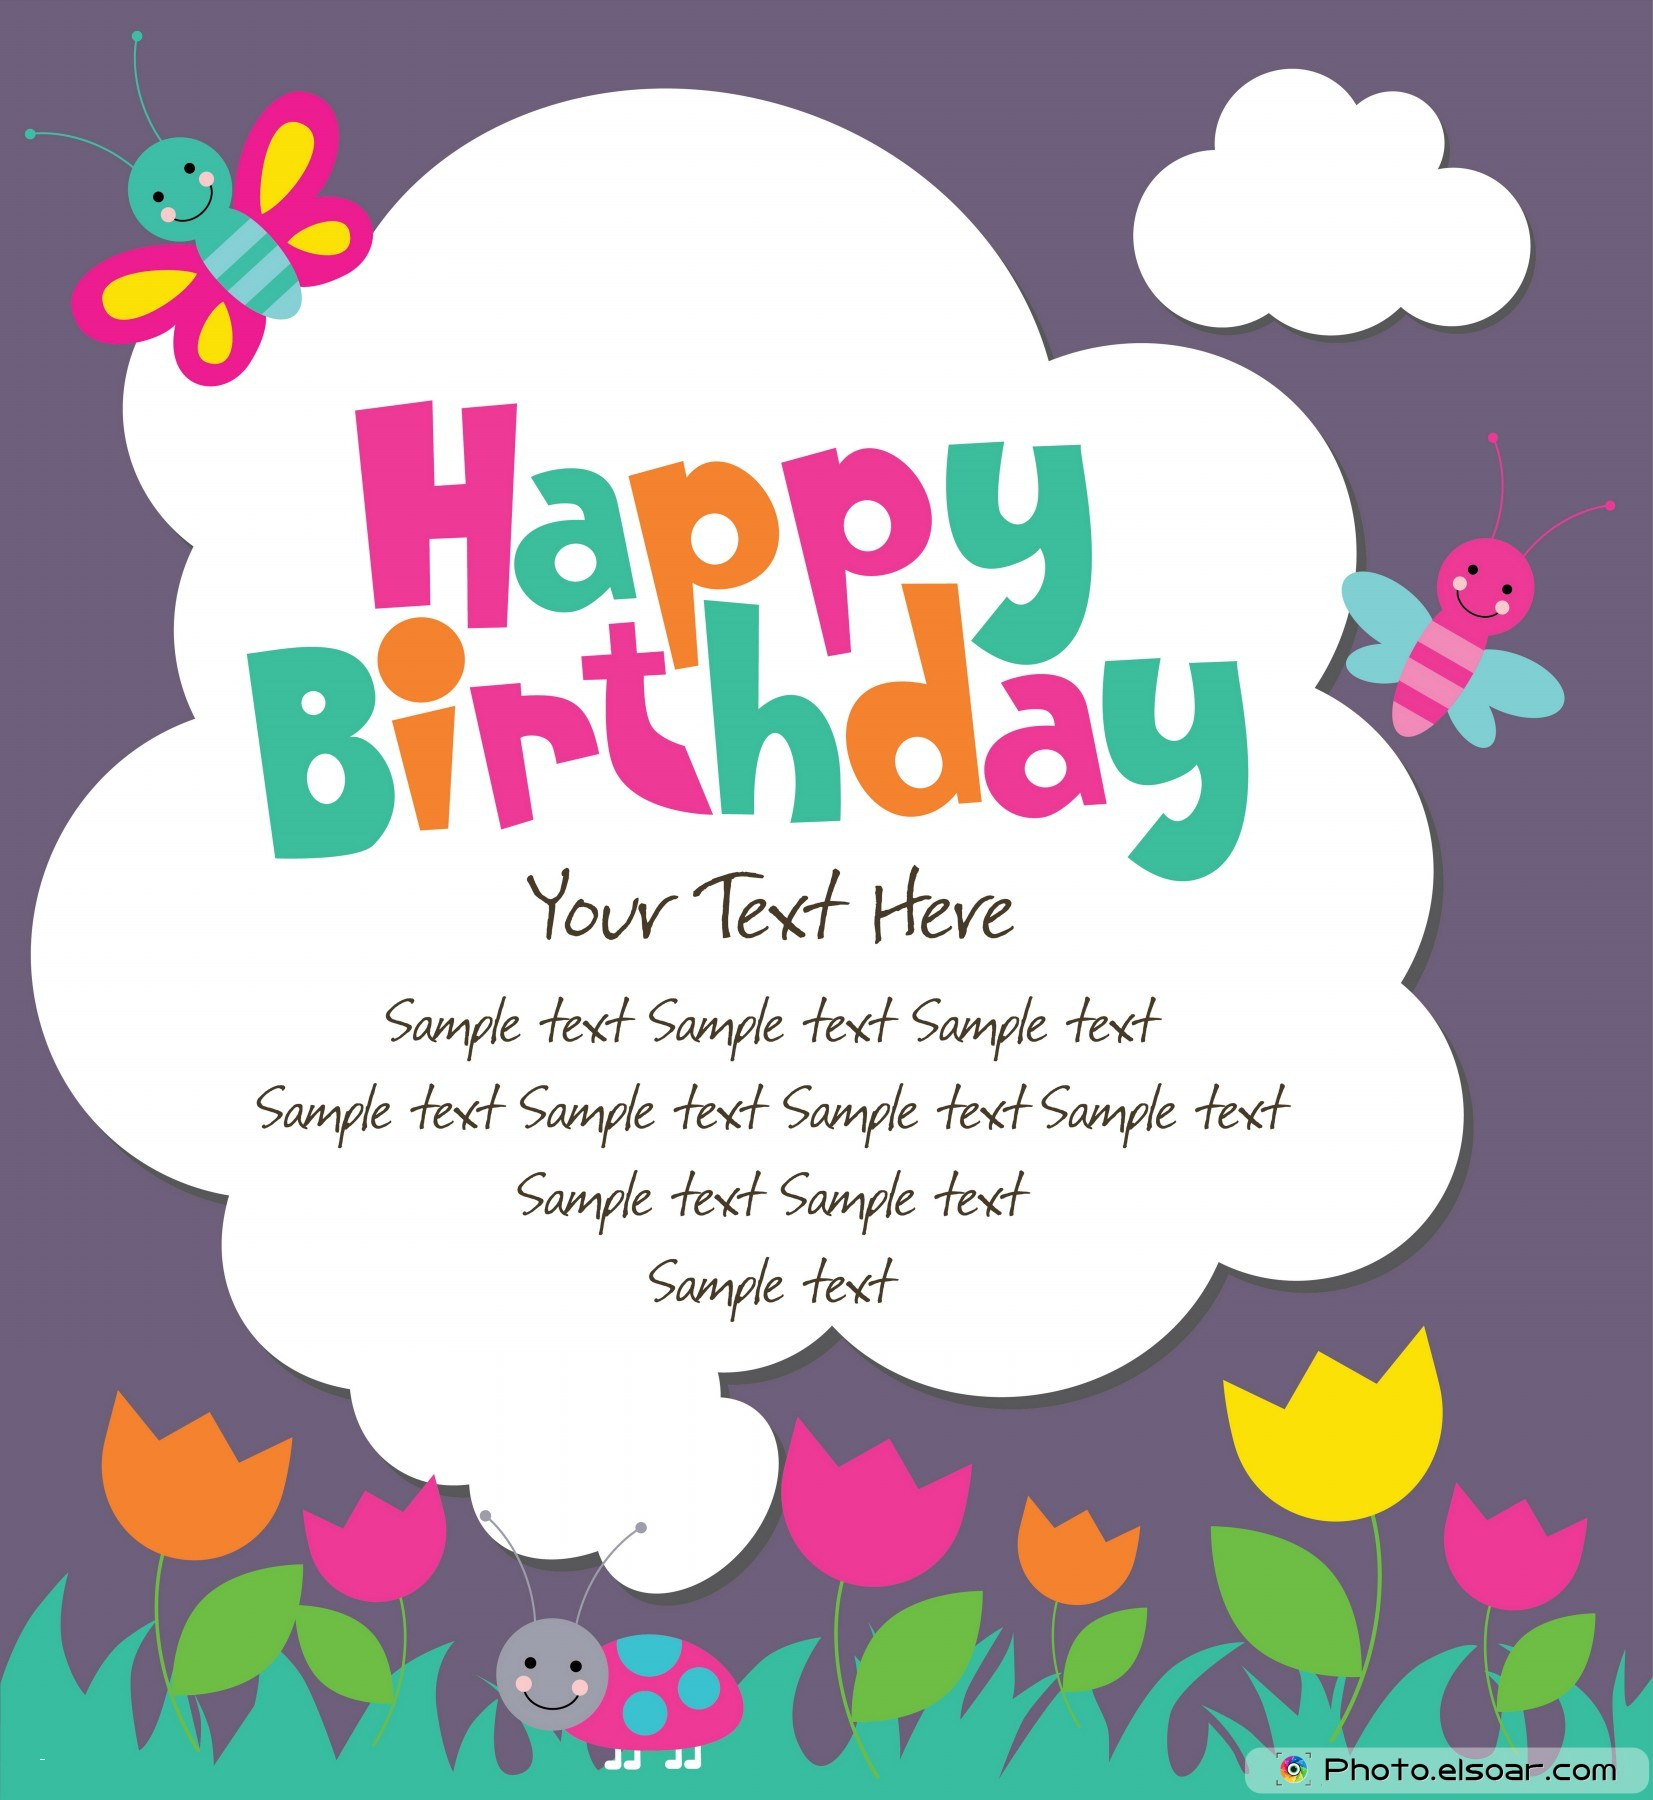 happy birthday design online ; personalized-electronic-birthday-cards-luxury-happy-birthday-card-design-online-oyle-kalakaari-of-personalized-electronic-birthday-cards